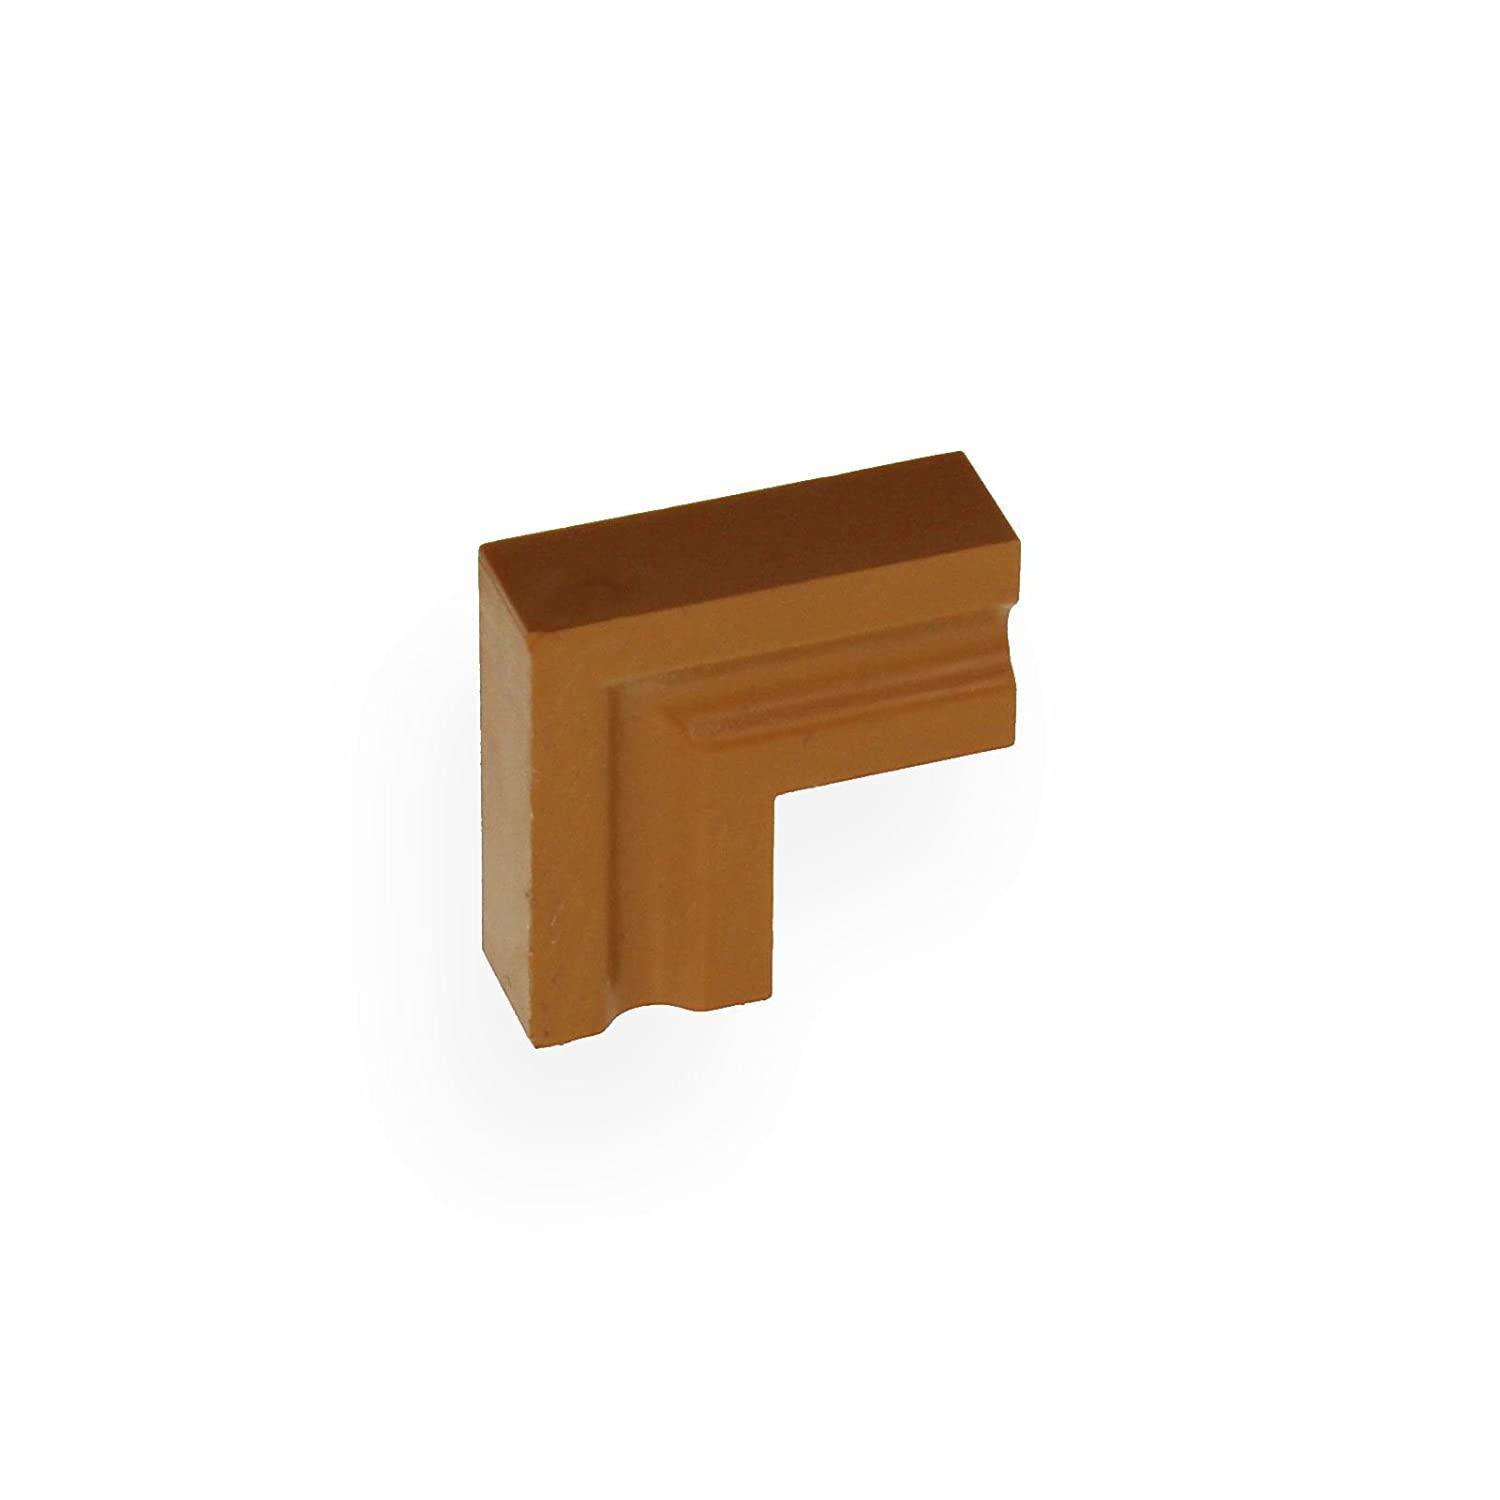 Roomline Architrave Internal Corner Joint - Caramel Eurocell